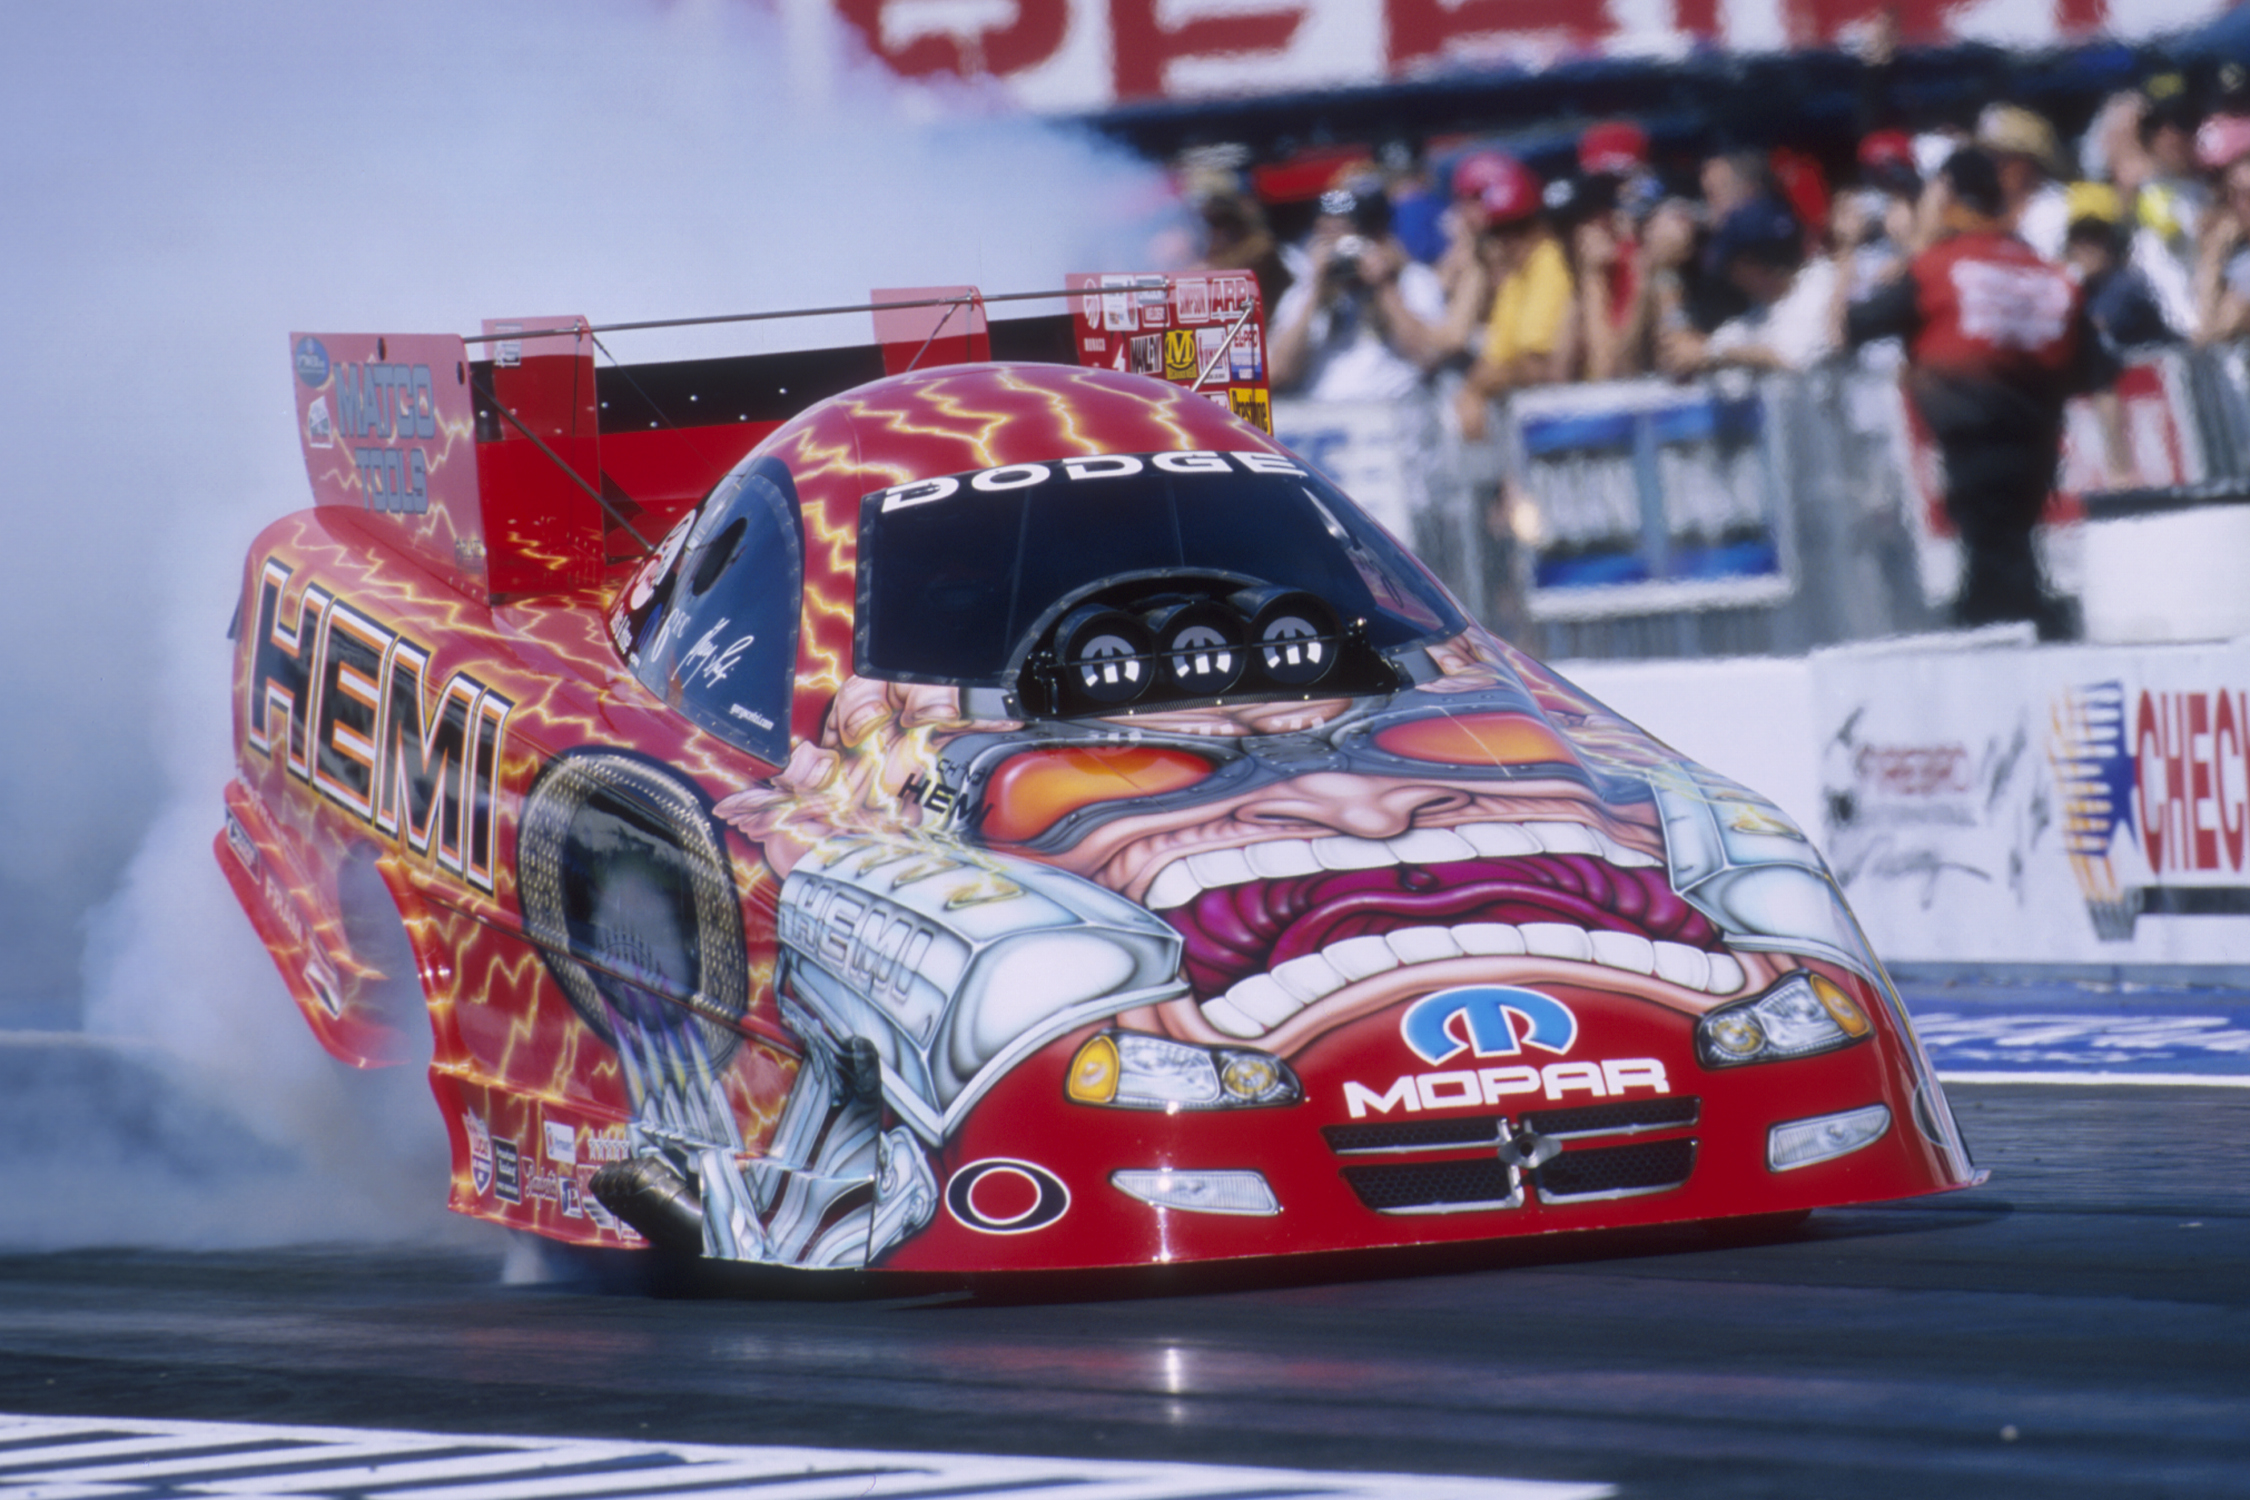 NHRA funny cars race racing drag s wallpaper background 2250x1500